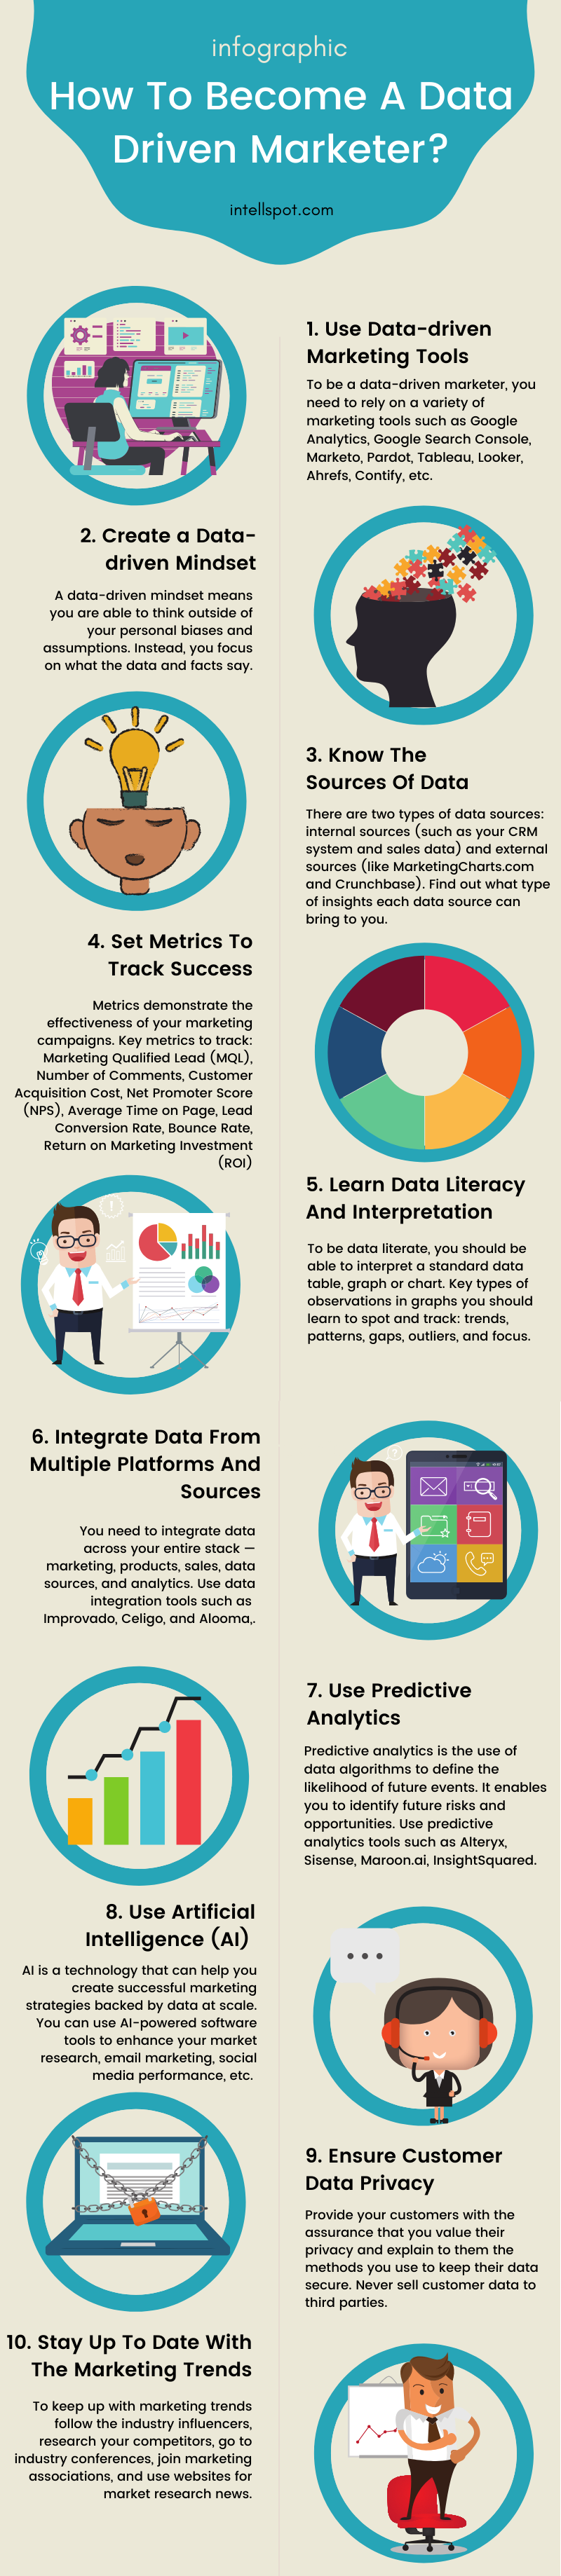 How To Become A Data Driven Marketer - Infographic